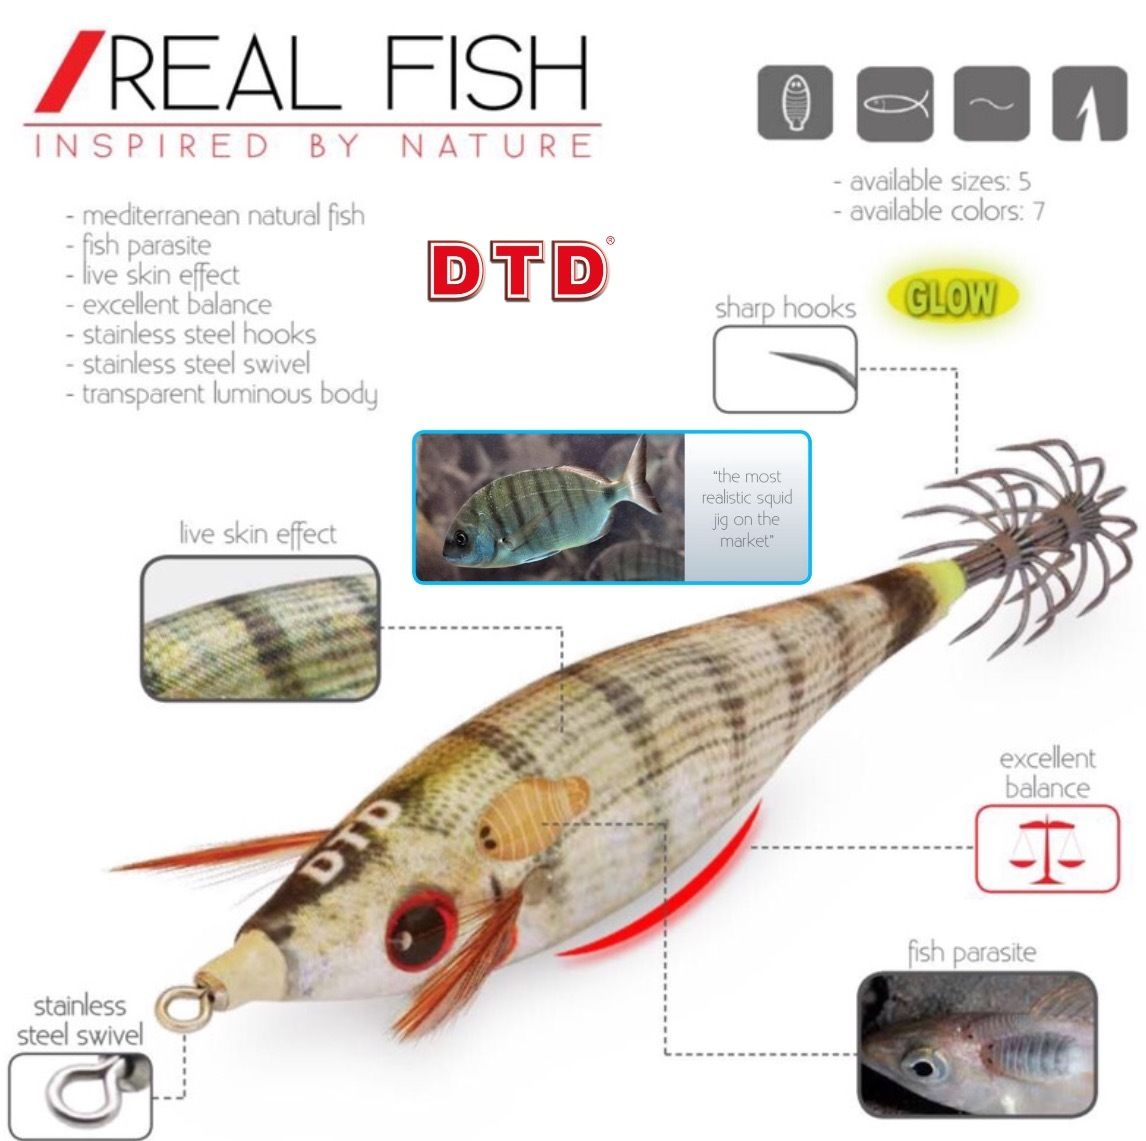 DTD SQUID FISHING REALISTIC SQUID JIG WEAK FISH BUKVA 3.0